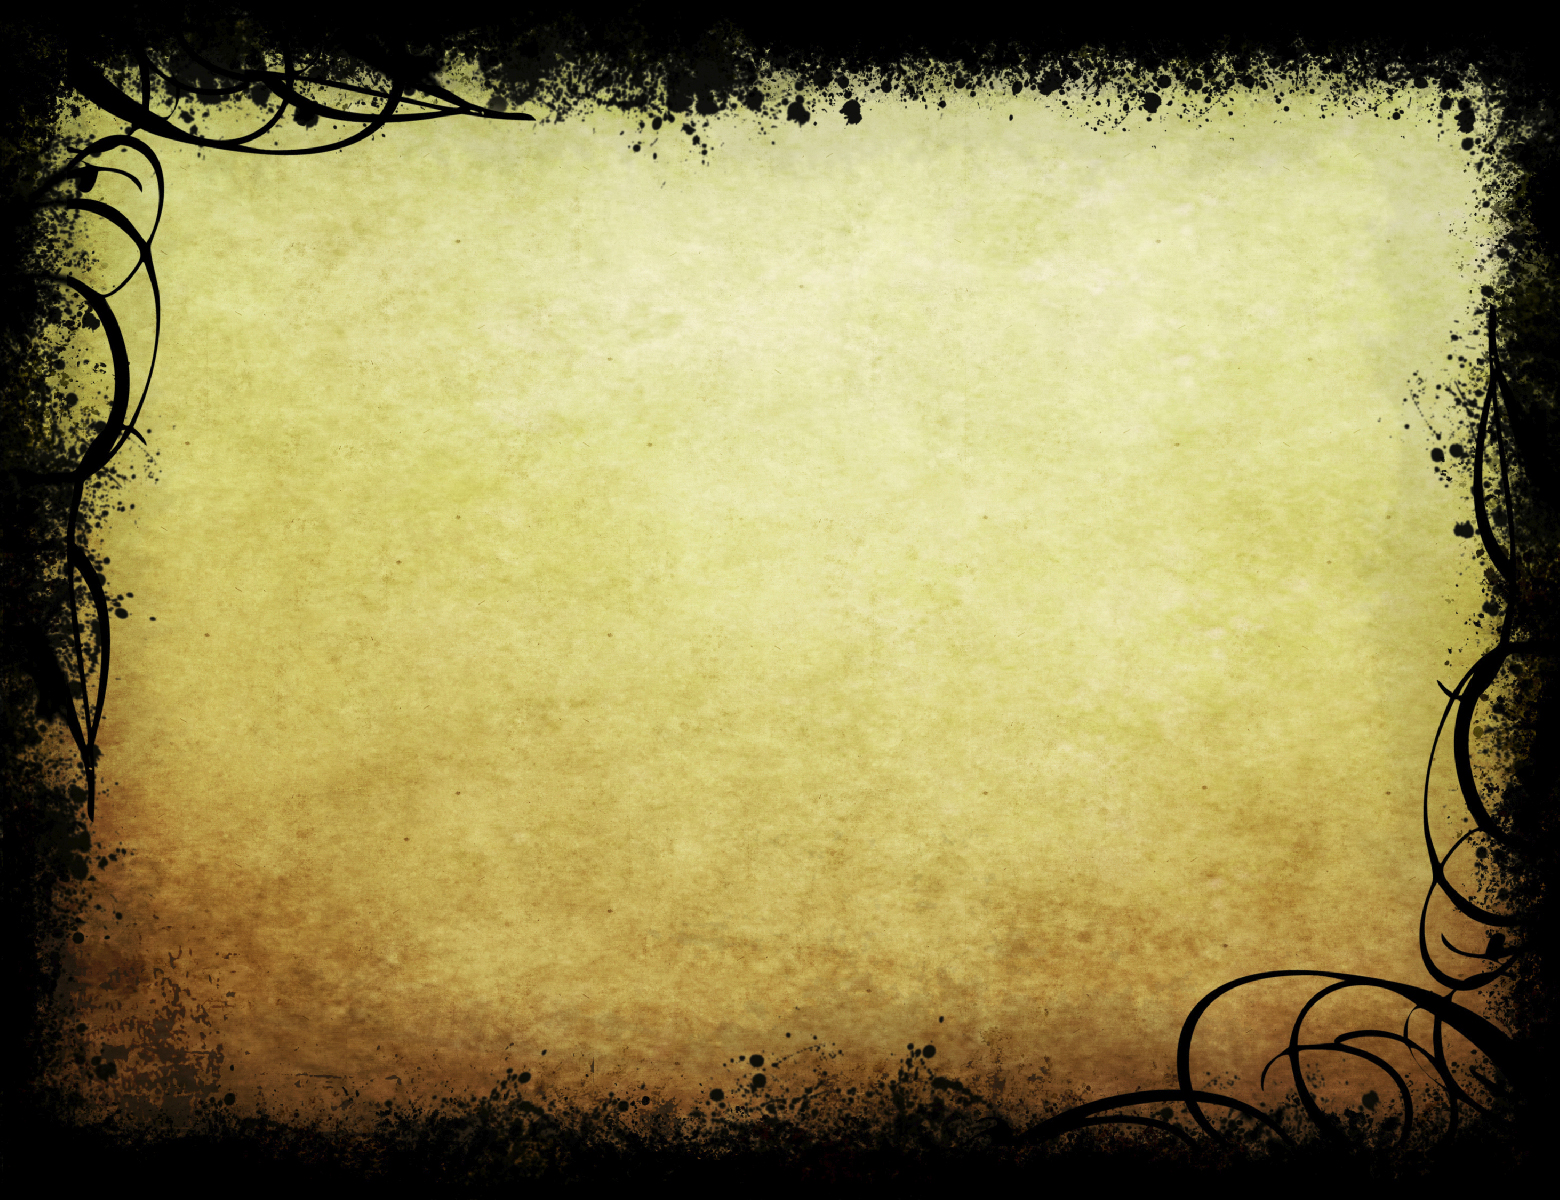 free download scroll background hd images  1560x1200  for